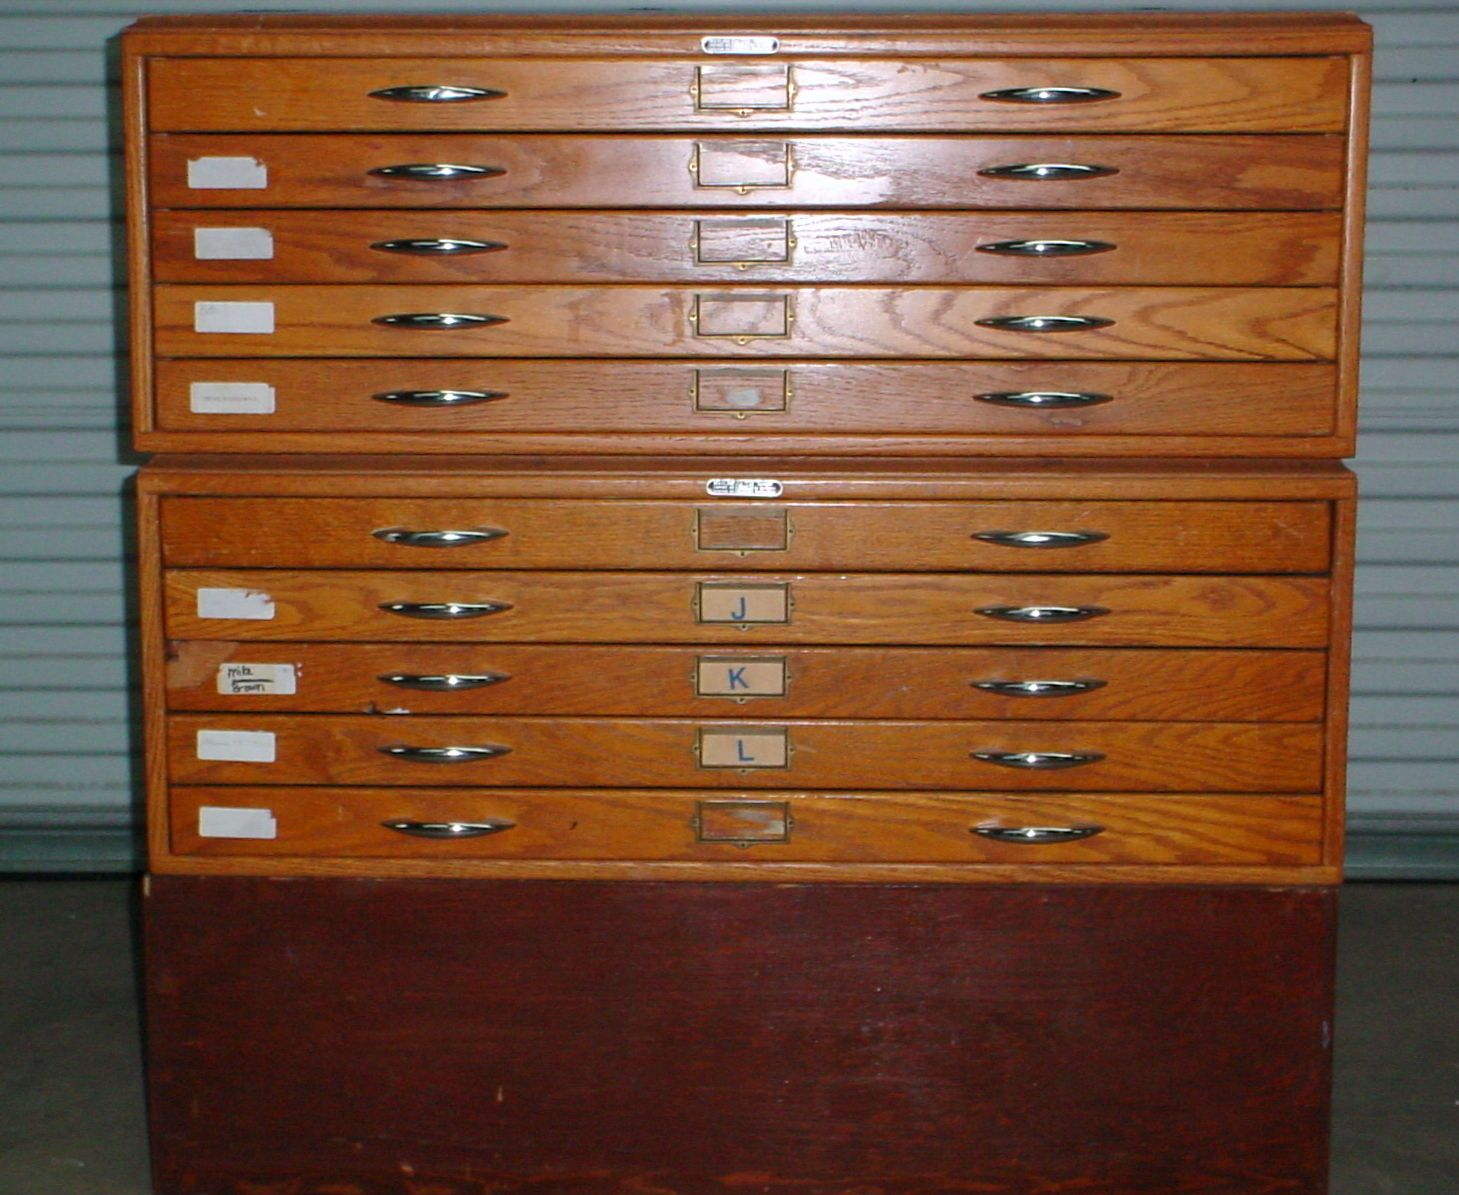 Mayline company 10 drawer wooden mapfile map drafting file cabinet mayline company 10 drawer wooden mapfile map drafting file cabinet blueprint ebay malvernweather Images